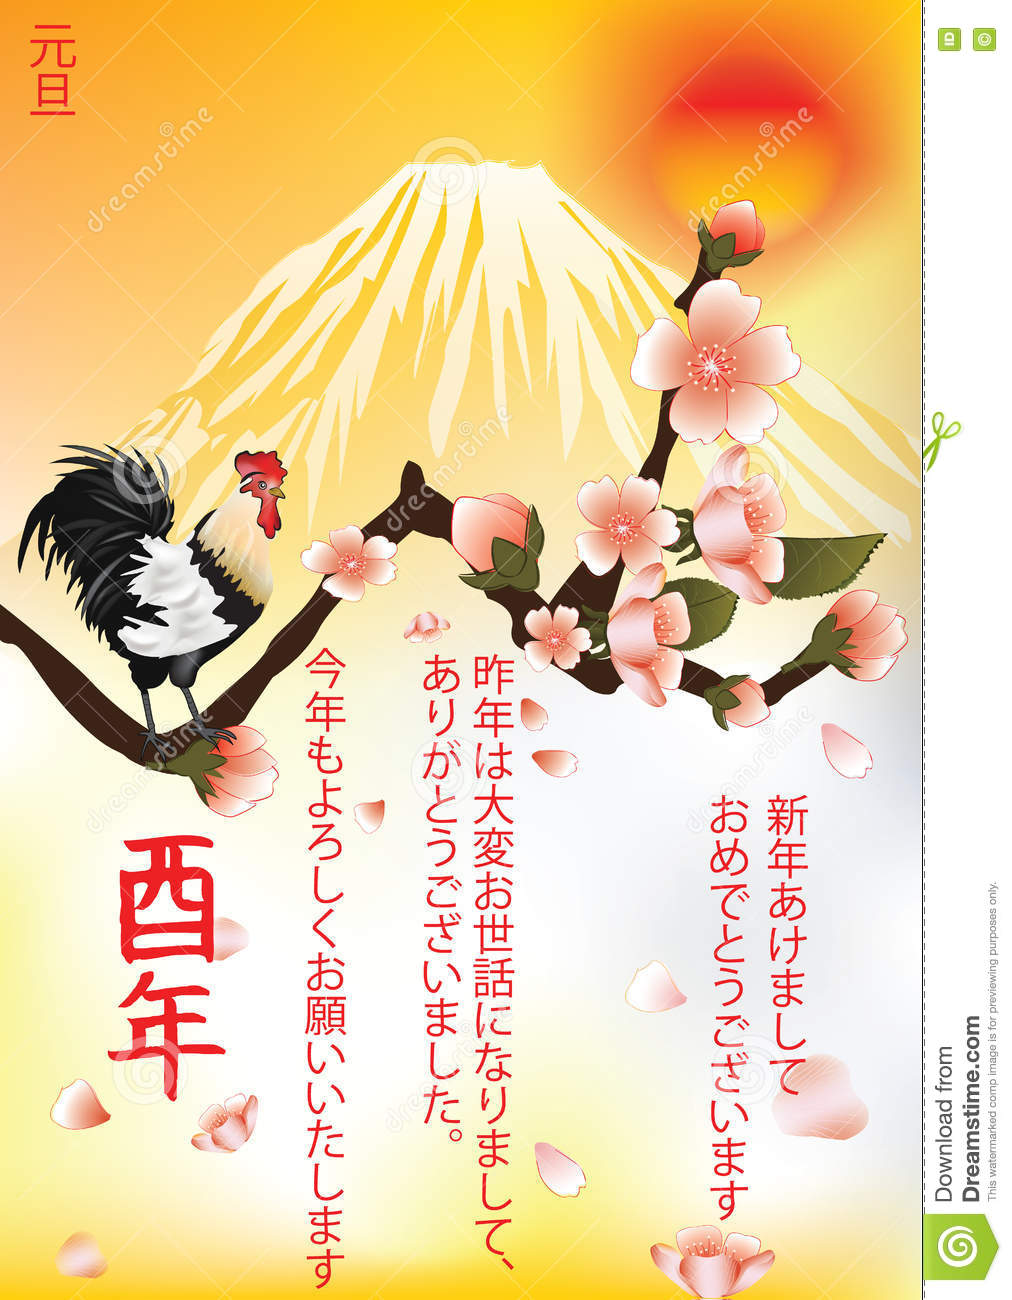 Japanese new year of the rooster greeting card stock illustration japanese new year of the rooster greeting card text business m4hsunfo Choice Image